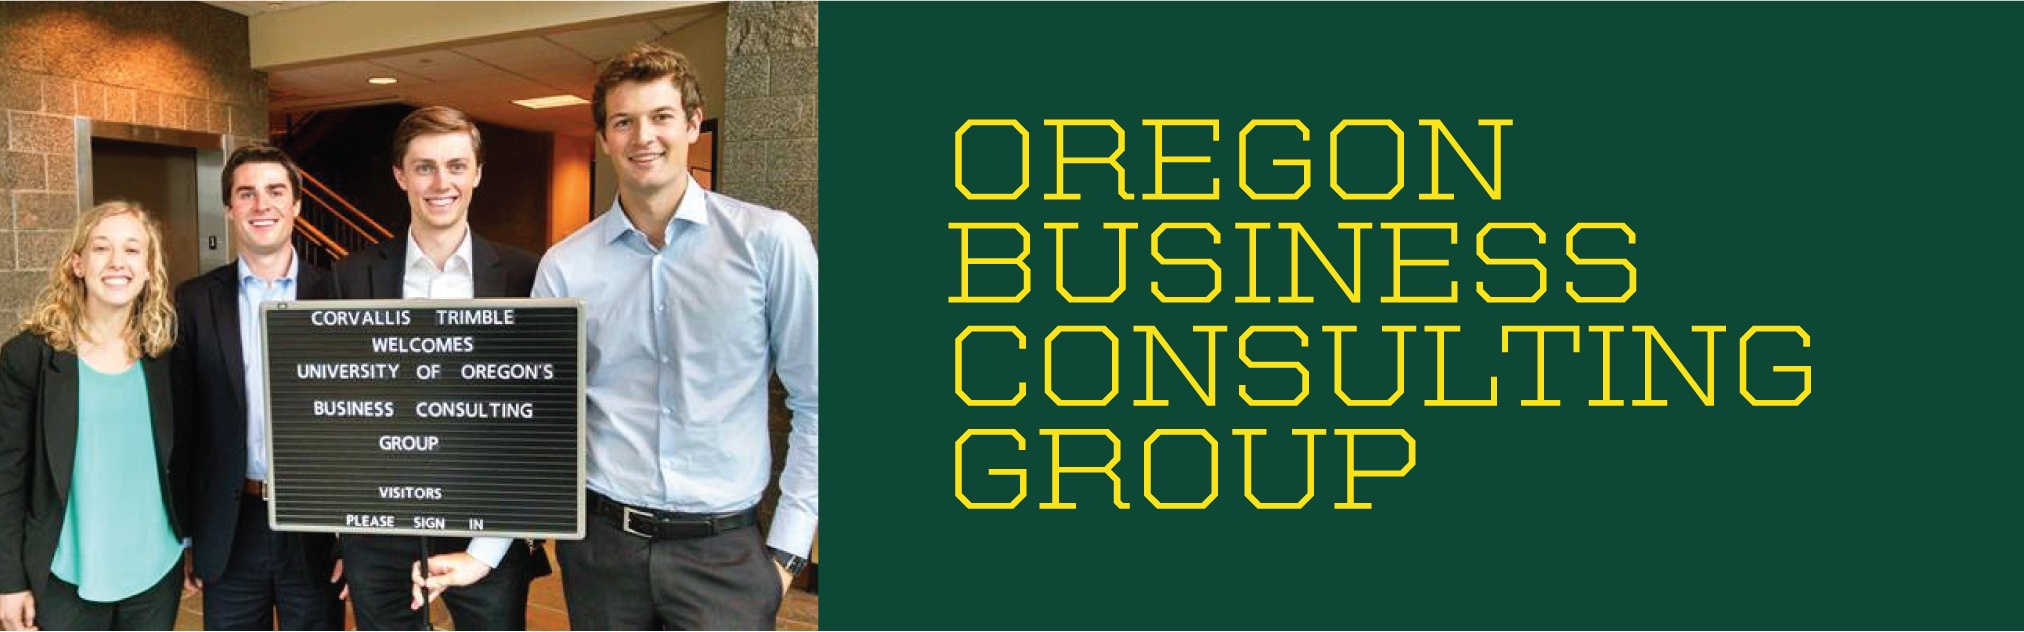 Oregon Business Consulting Group